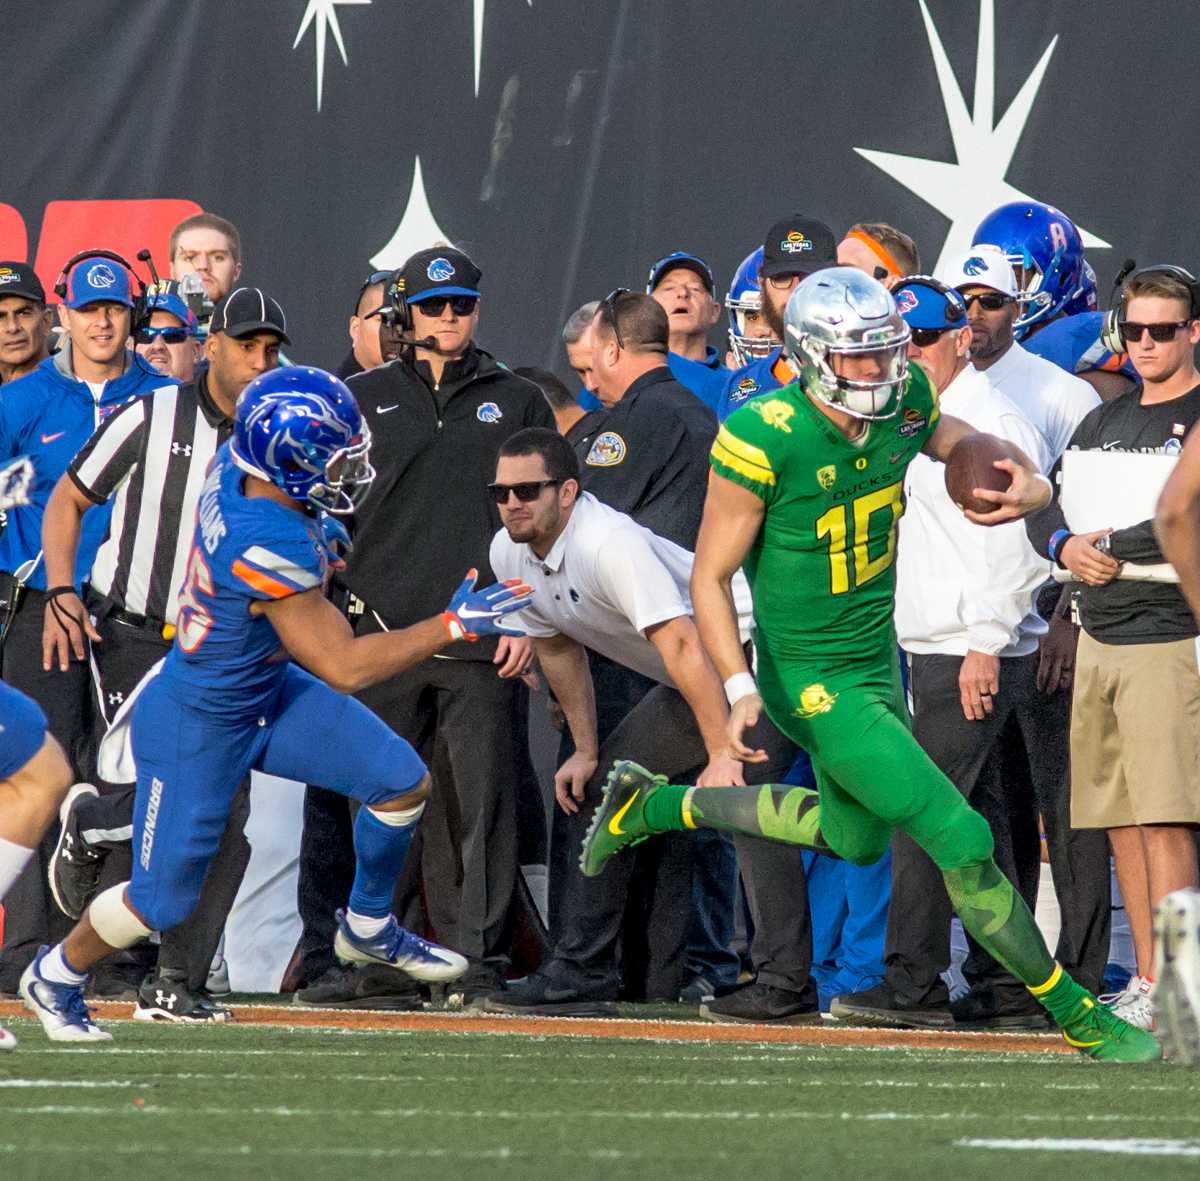 Oregon quarterback Justin Herbert (#10) sprints away from a Boise State defender.The Boise State Broncos defeated the Oregon Ducks 38 to 28 in the 2017 Las Vegas Bowl at Sam Boyd Stadium in Las Vegas, Nevada on Saturday December 17, 2017. The Las Vegas Bowl served as the first test for Oregon's new Head Coach Mario Cristobal following the loss of former Head Coach Willie Taggart to Florida State University earlier this month. Photo by Ben Lonergan, Oregon News Lab